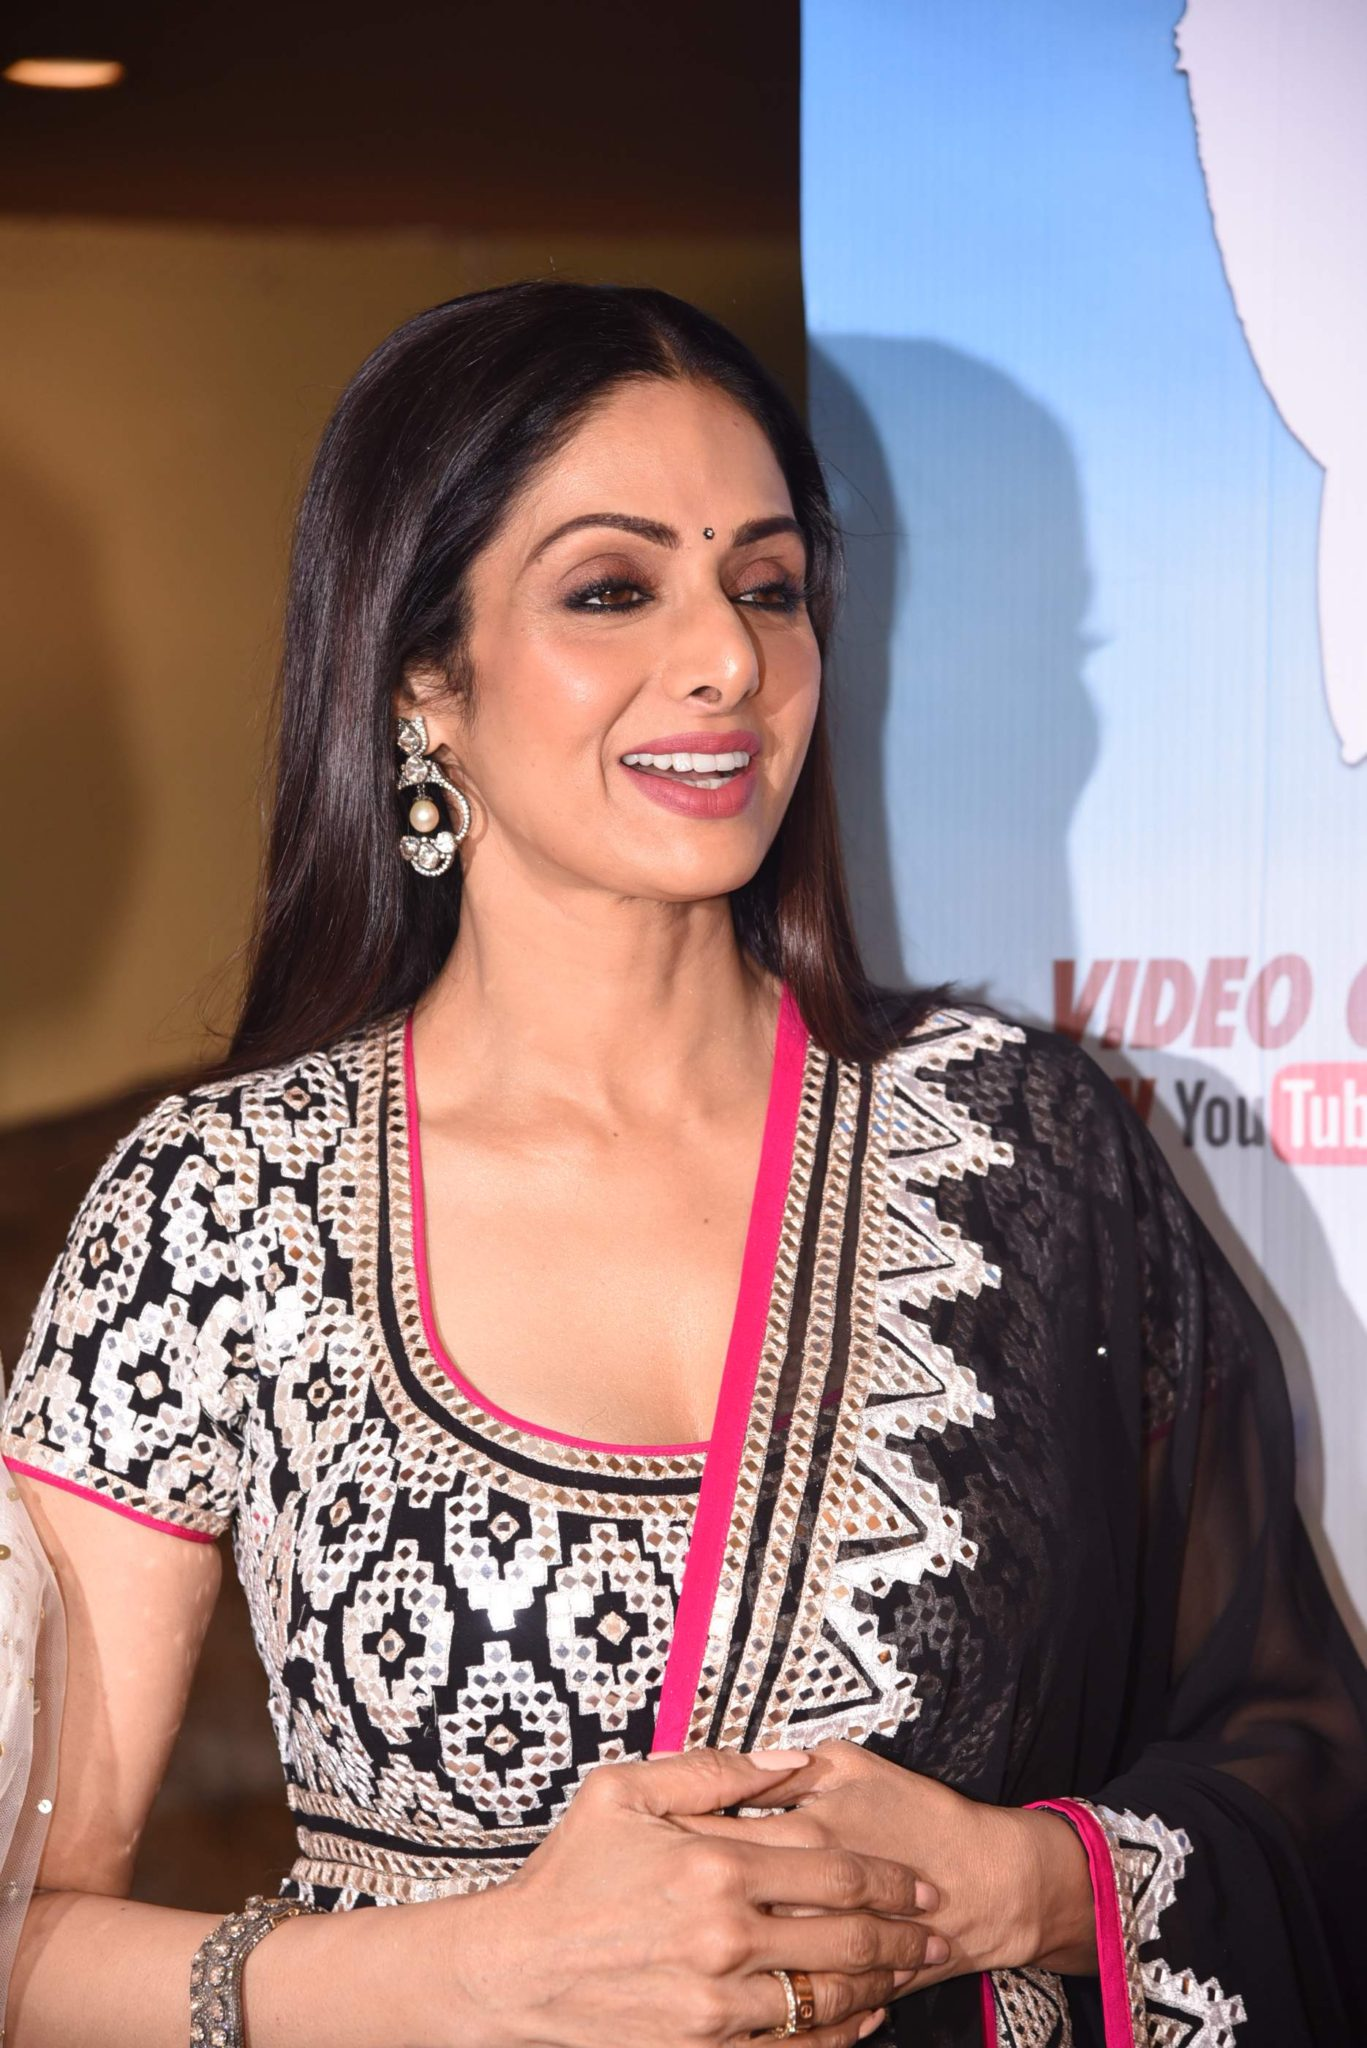 sridevi Photo Stills Of Beautiful Sridevi From 'Kabhi Yaadon Mein' Event Sridevi TSeries 49